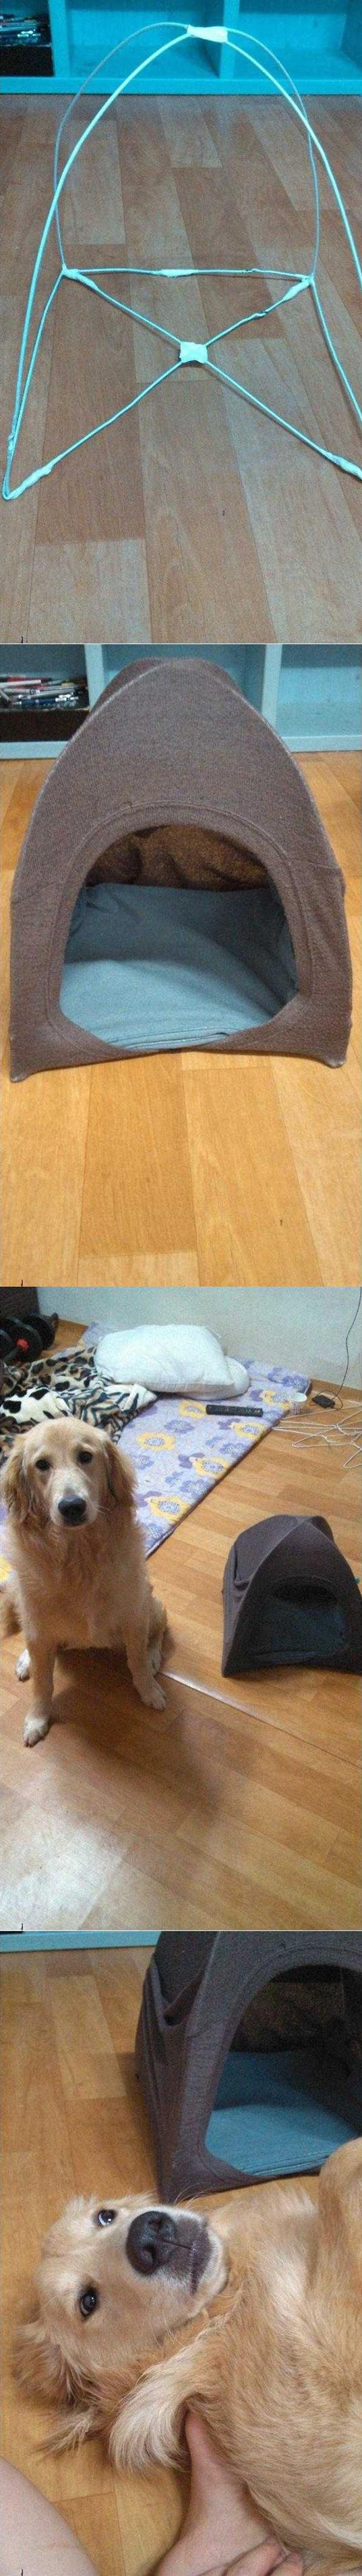 funny-tent-dog-small-disappoint